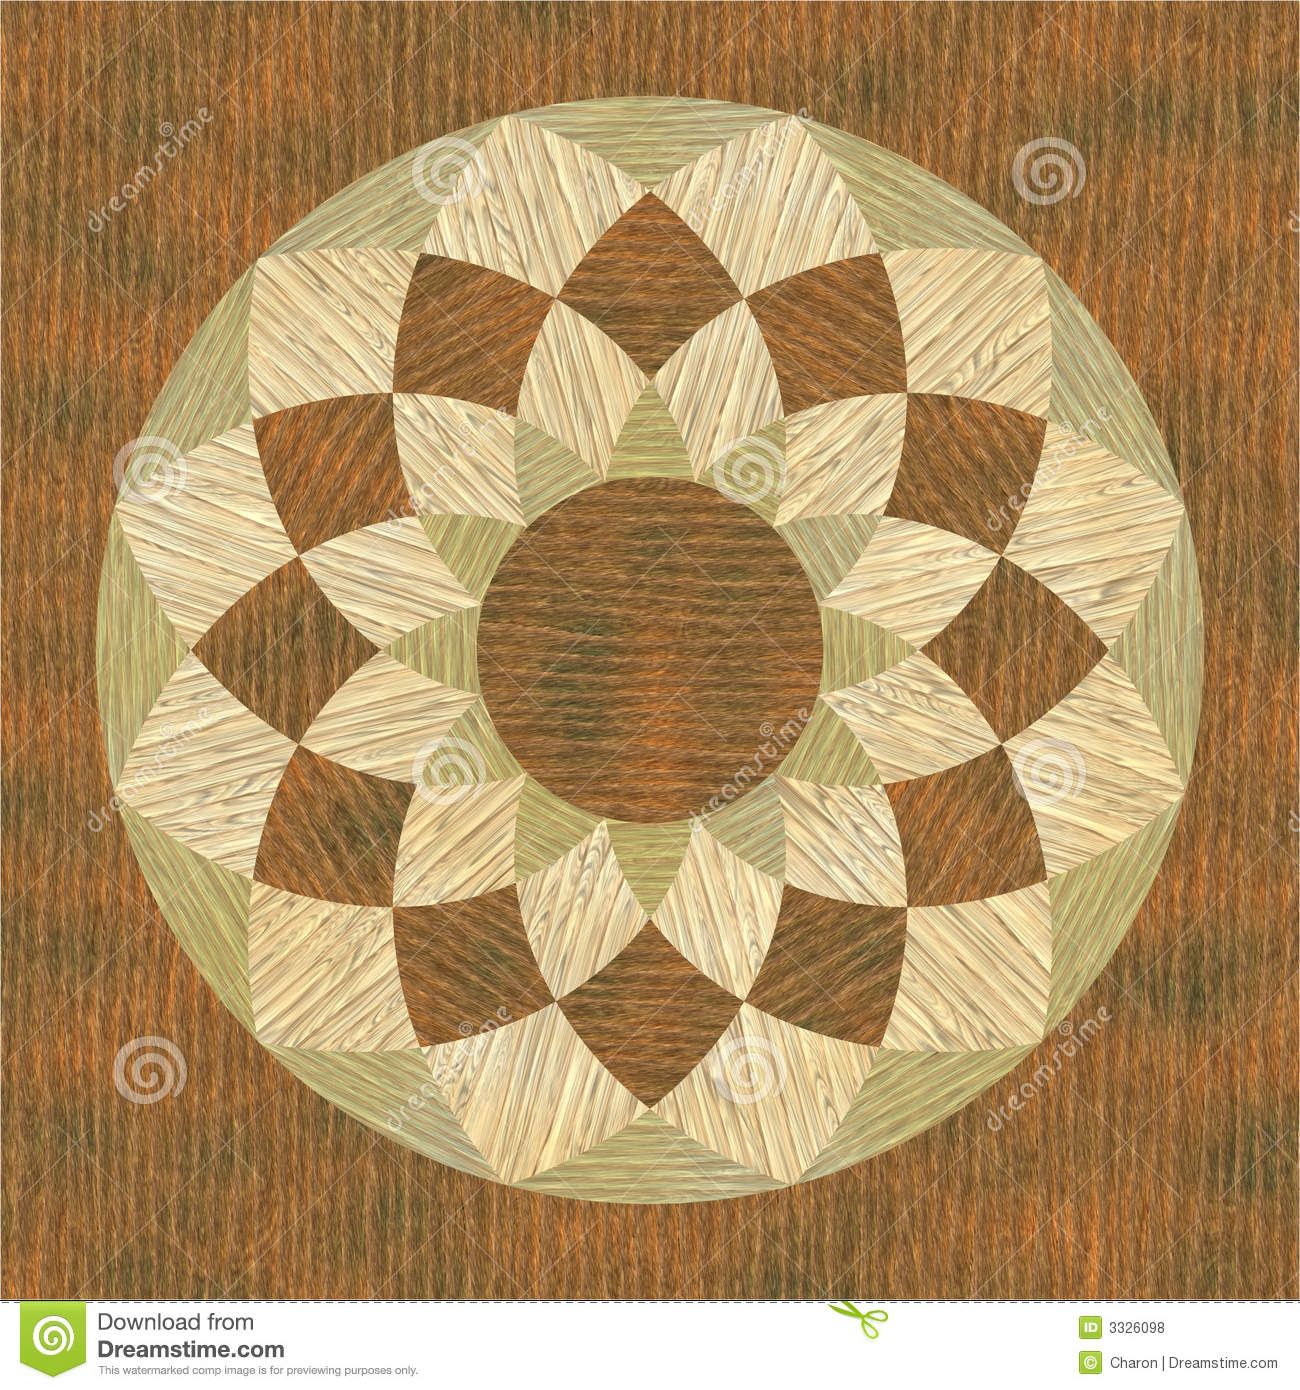 Circular Wooden Pattern Fine Inlay Texture Royalty Free Stock Photos - Image: 3326098